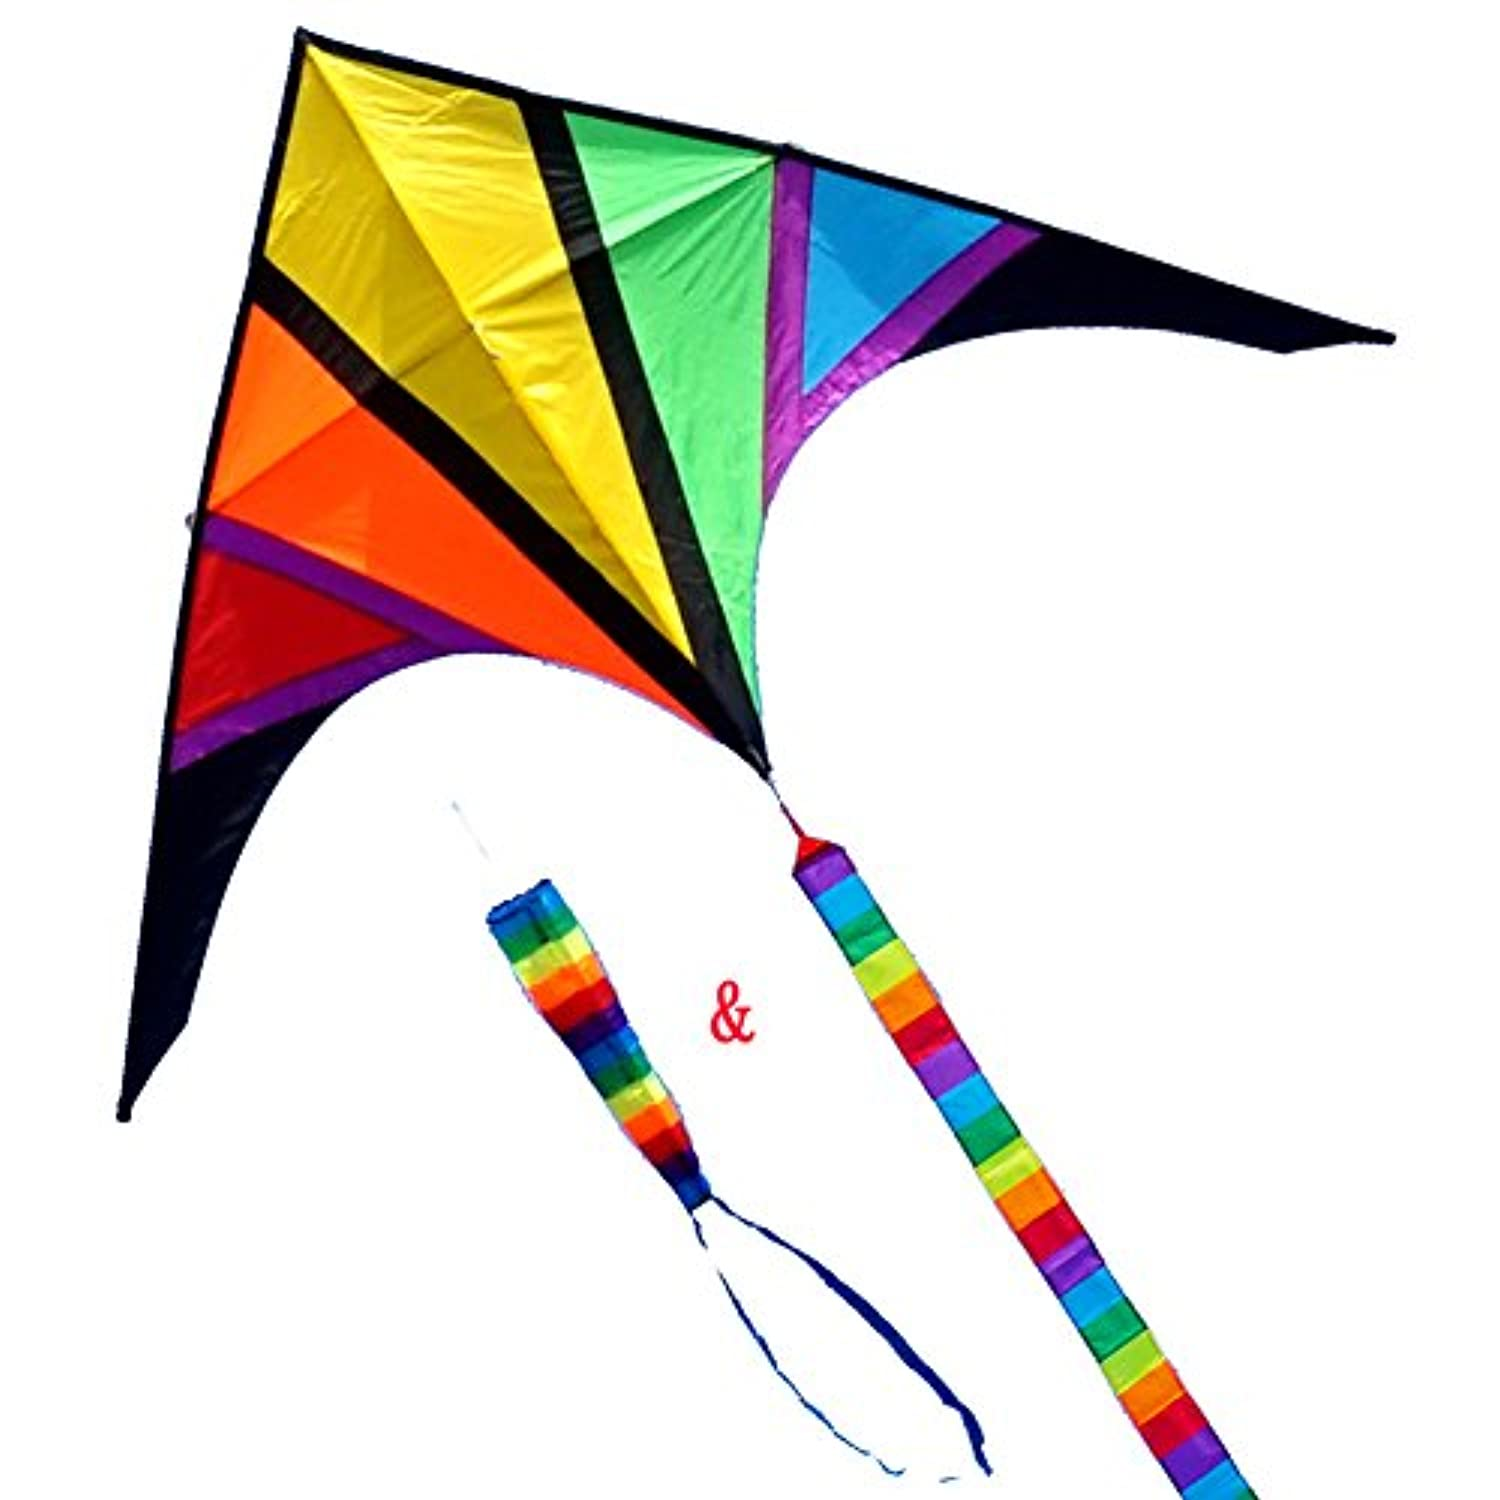 (110inch) - Besra 280cm Rainbow Delta Kite with windsock & 10m long Tail for Kids and Adults Outdoor Fun Sports for Beach & Park